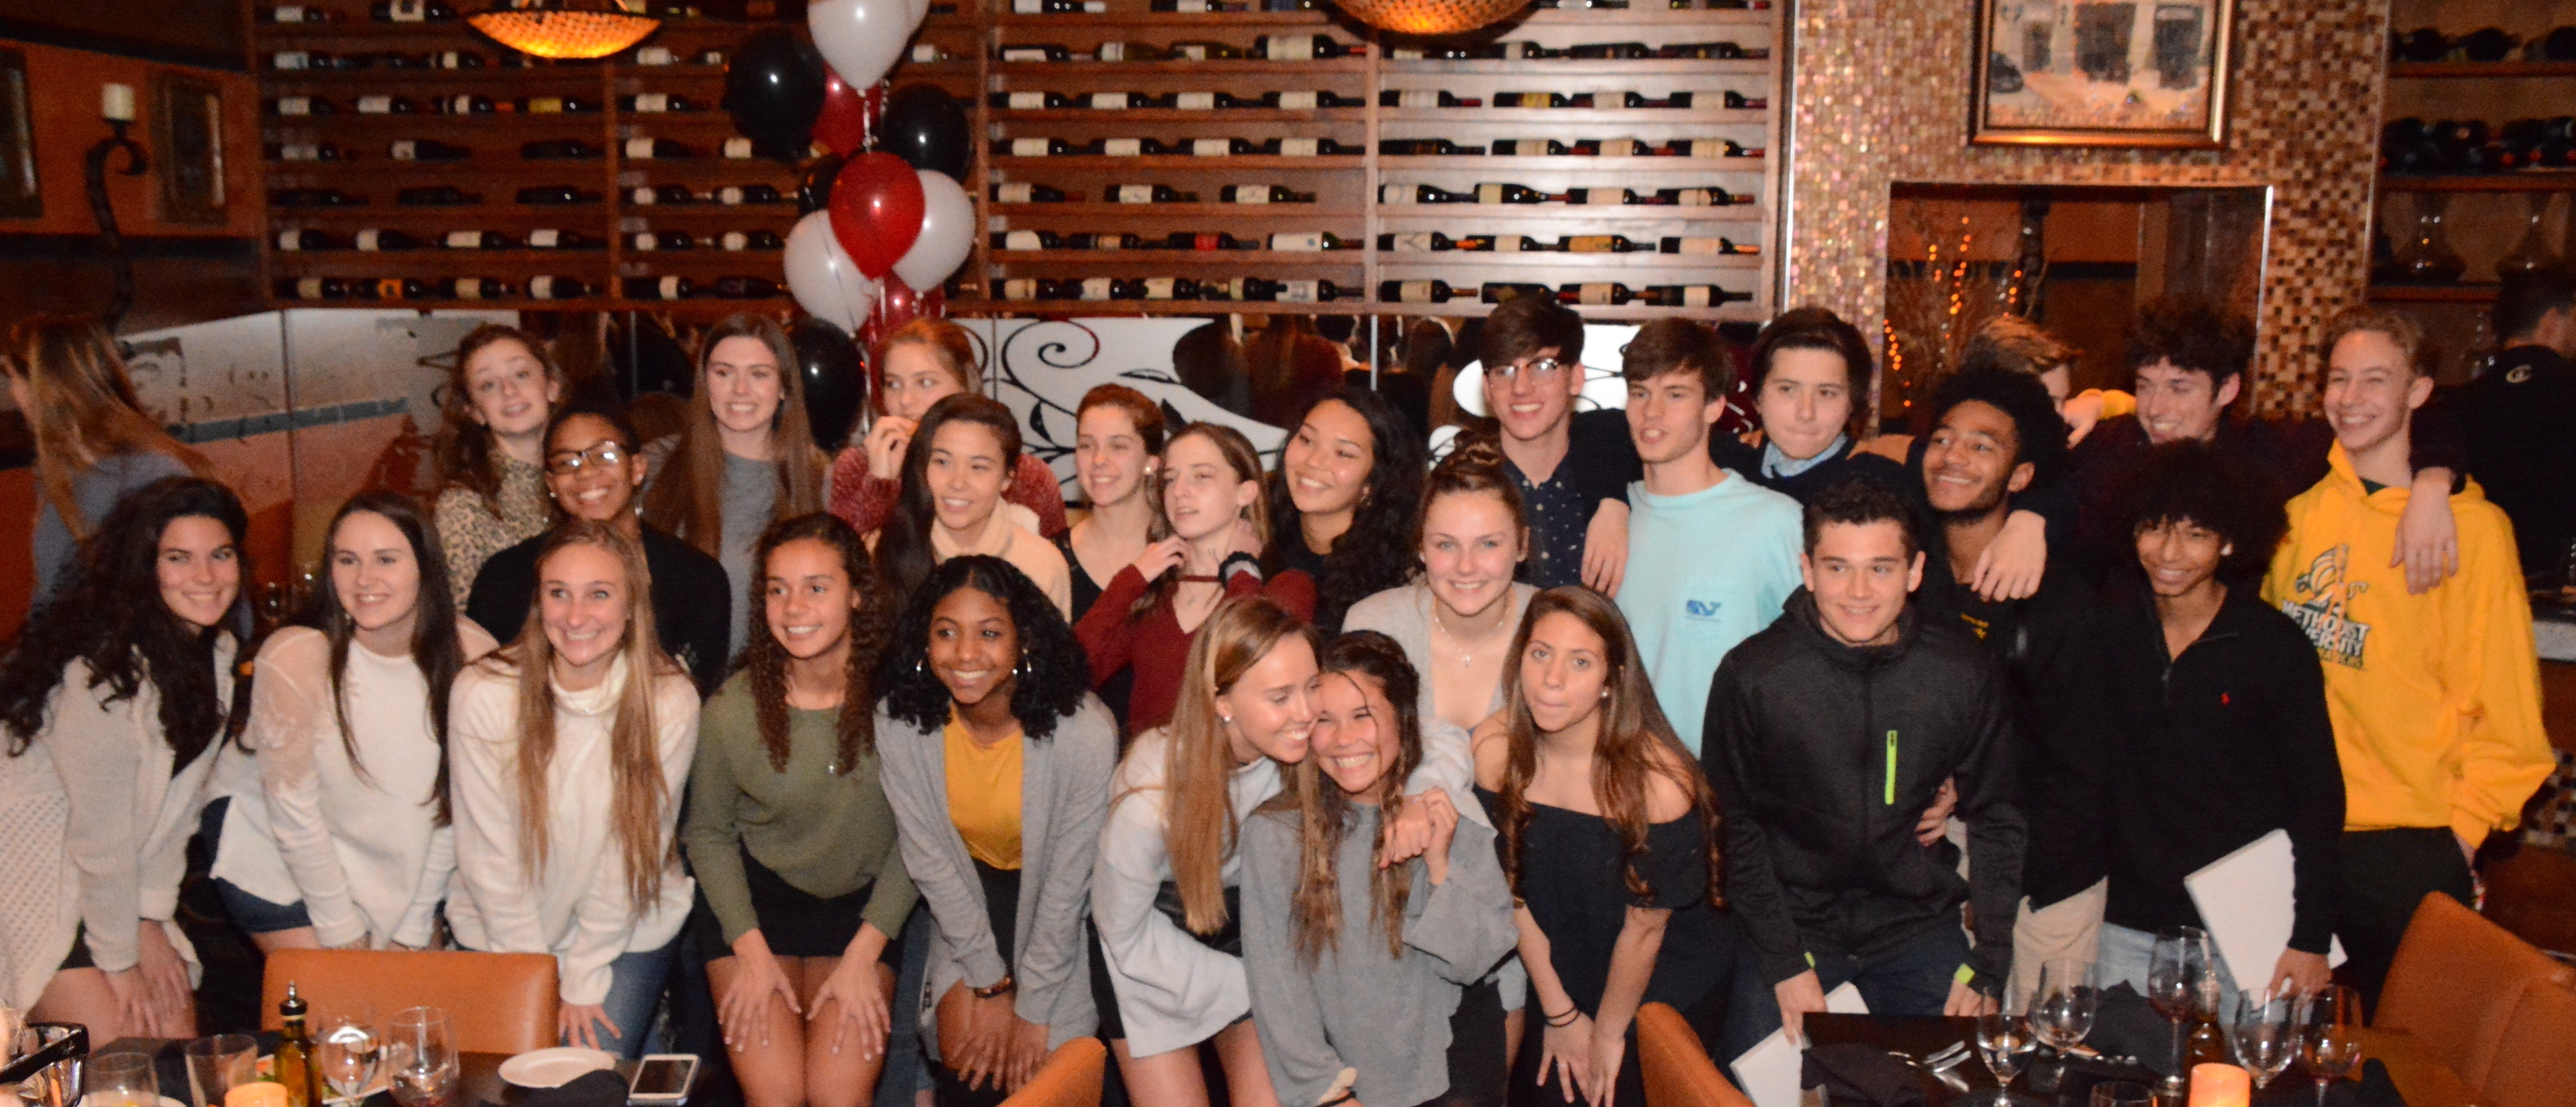 Senior Celebration | Class of 2019